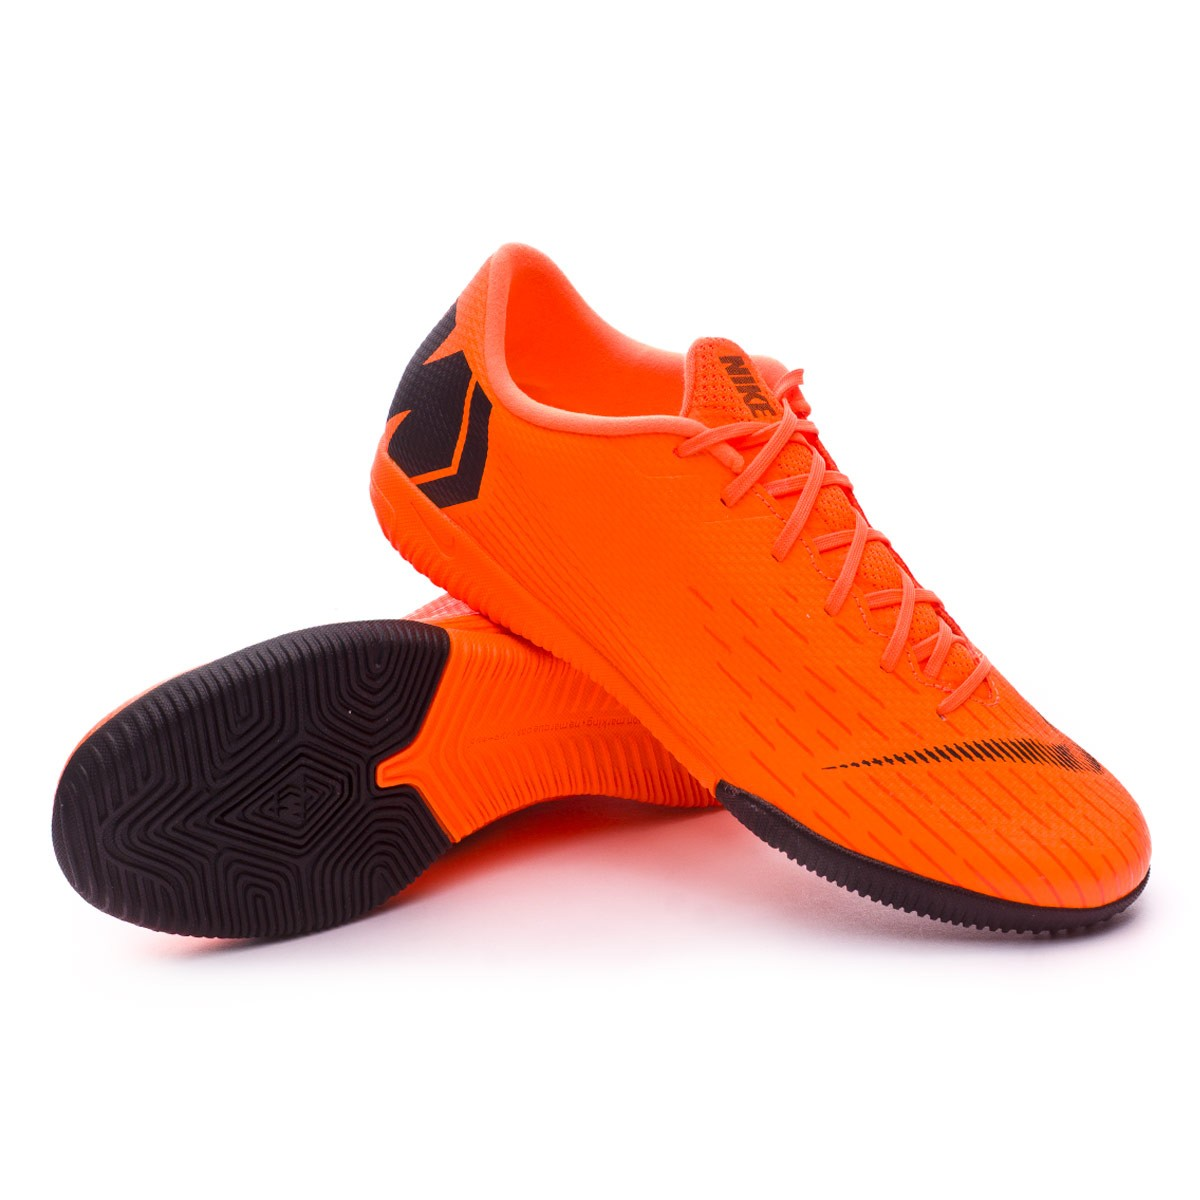 90075cf9978e4 Futsal Boot Nike Mercurial VaporX XII Academy IC Total orange-Black ...